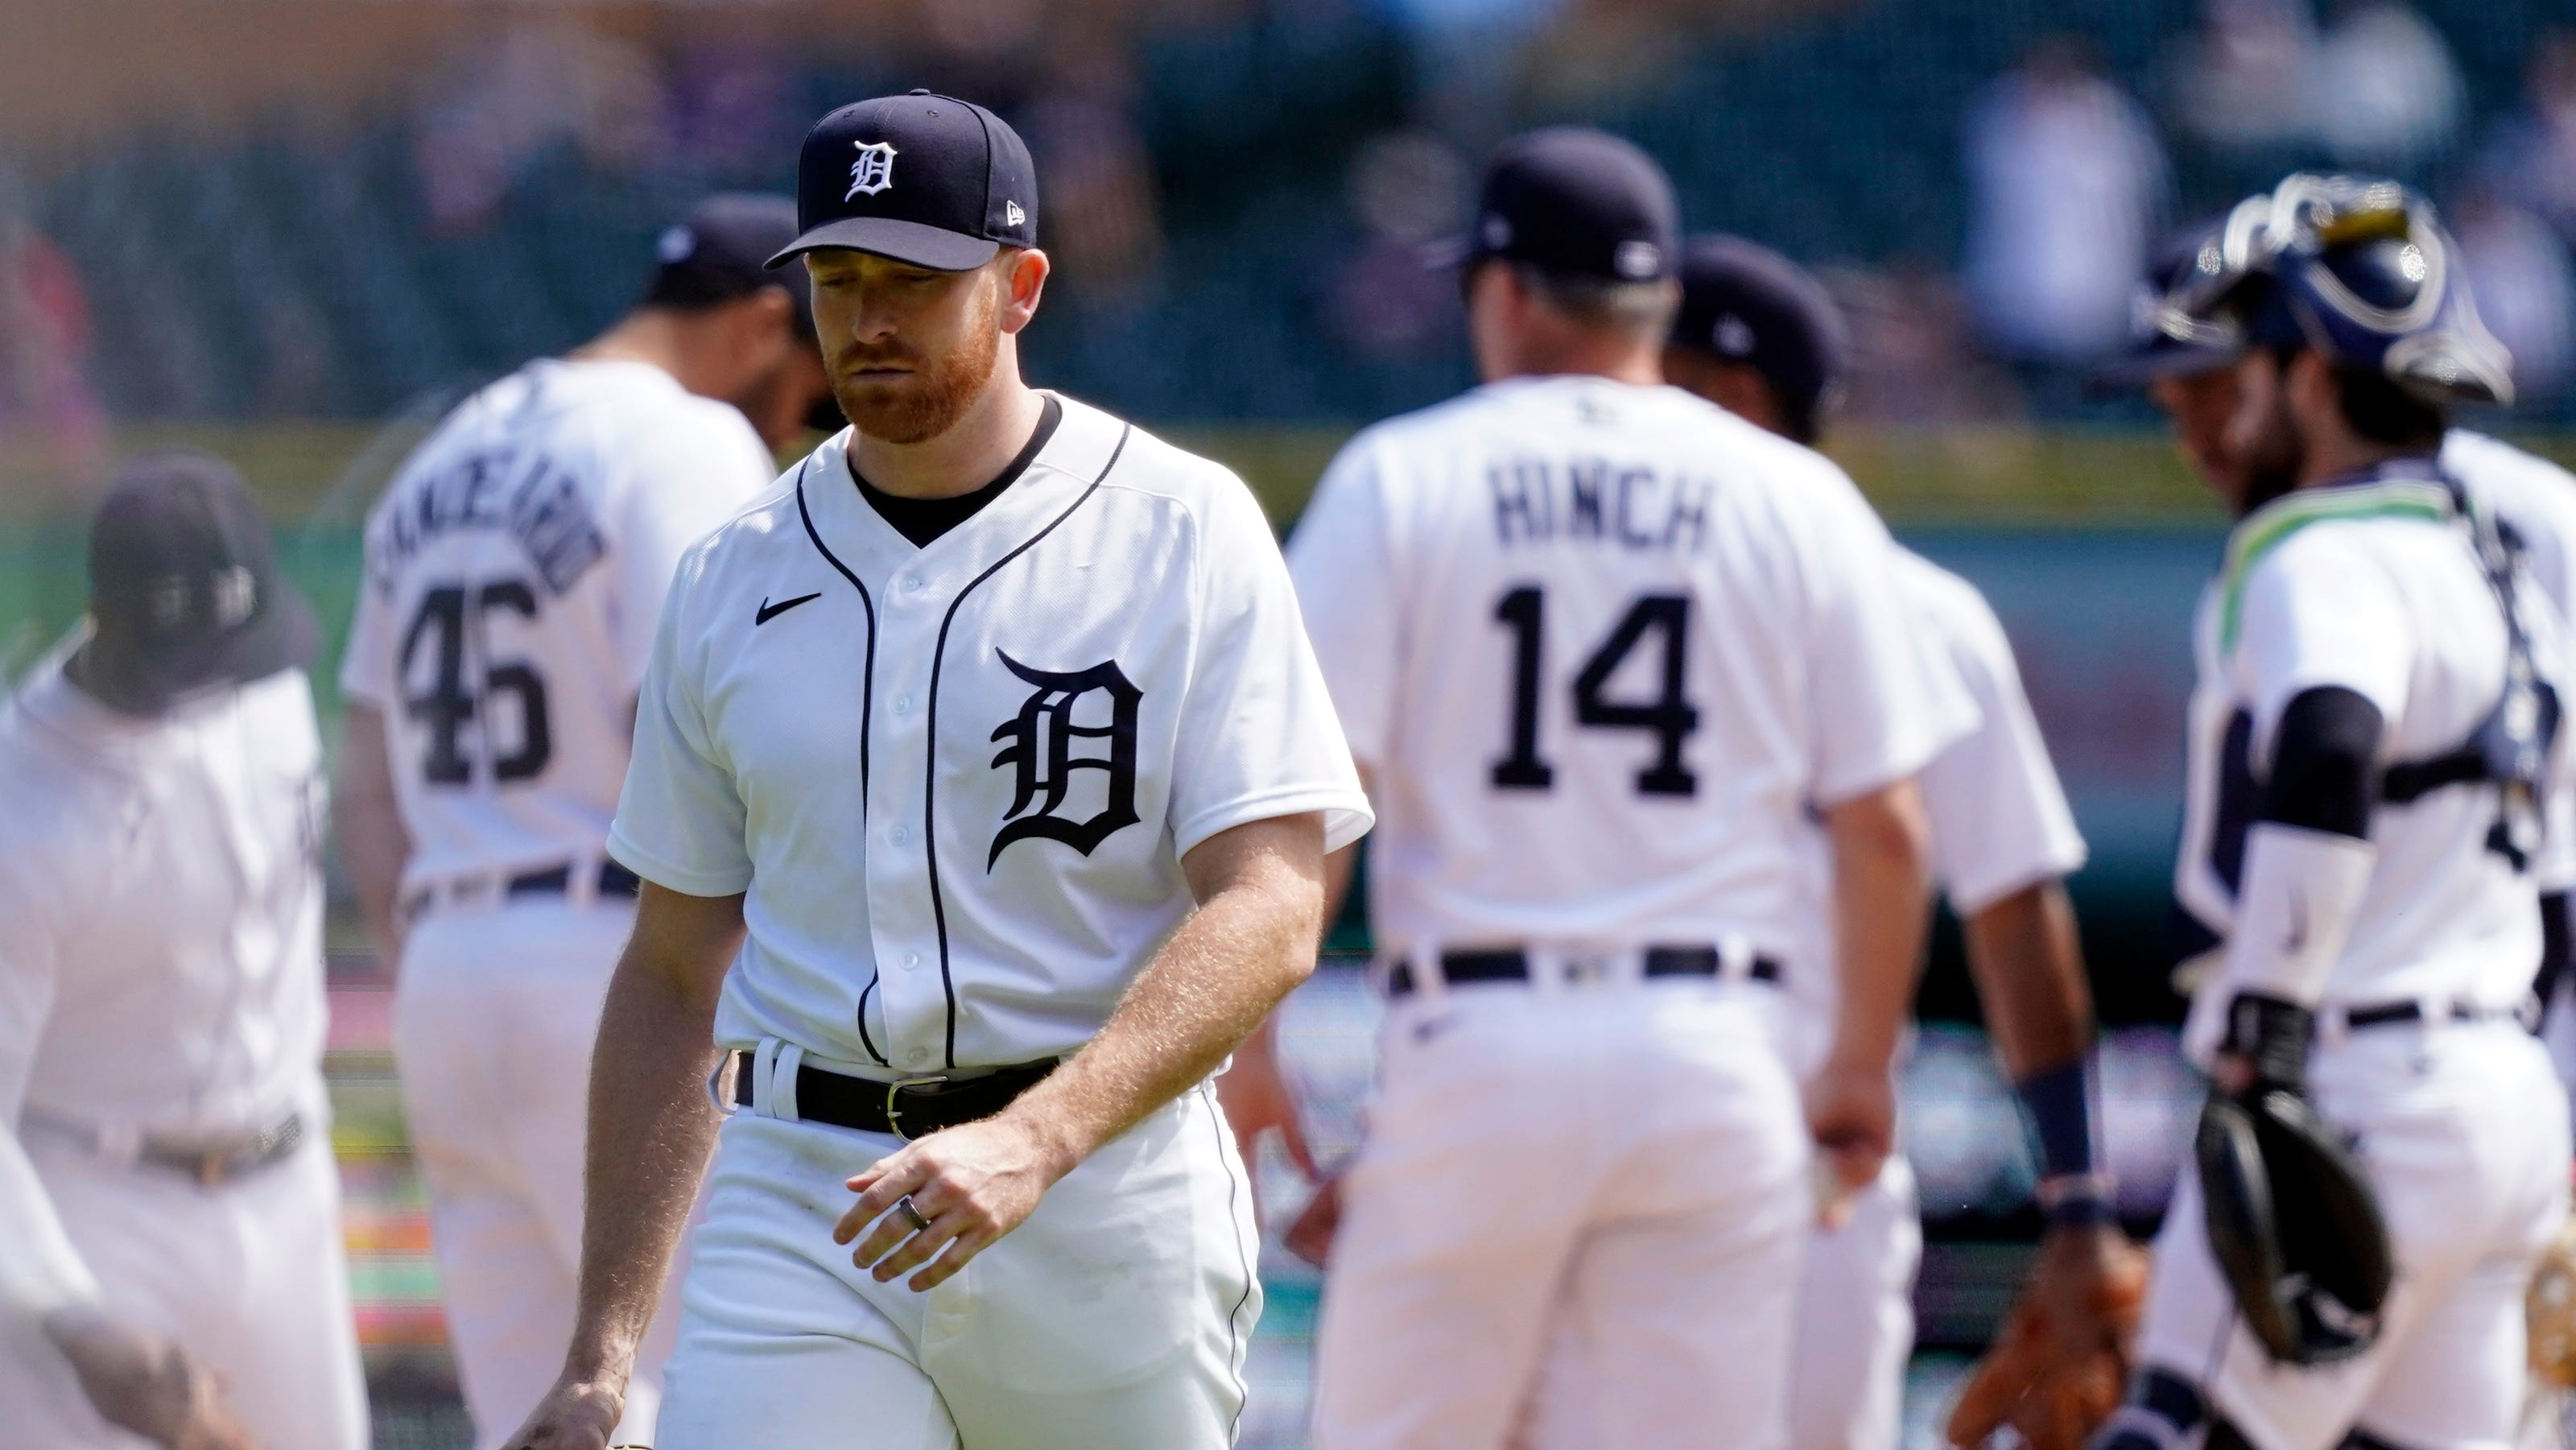 Spencer Turnbull back on track as Detroit Tigers win four in a row: 'We're a good team'